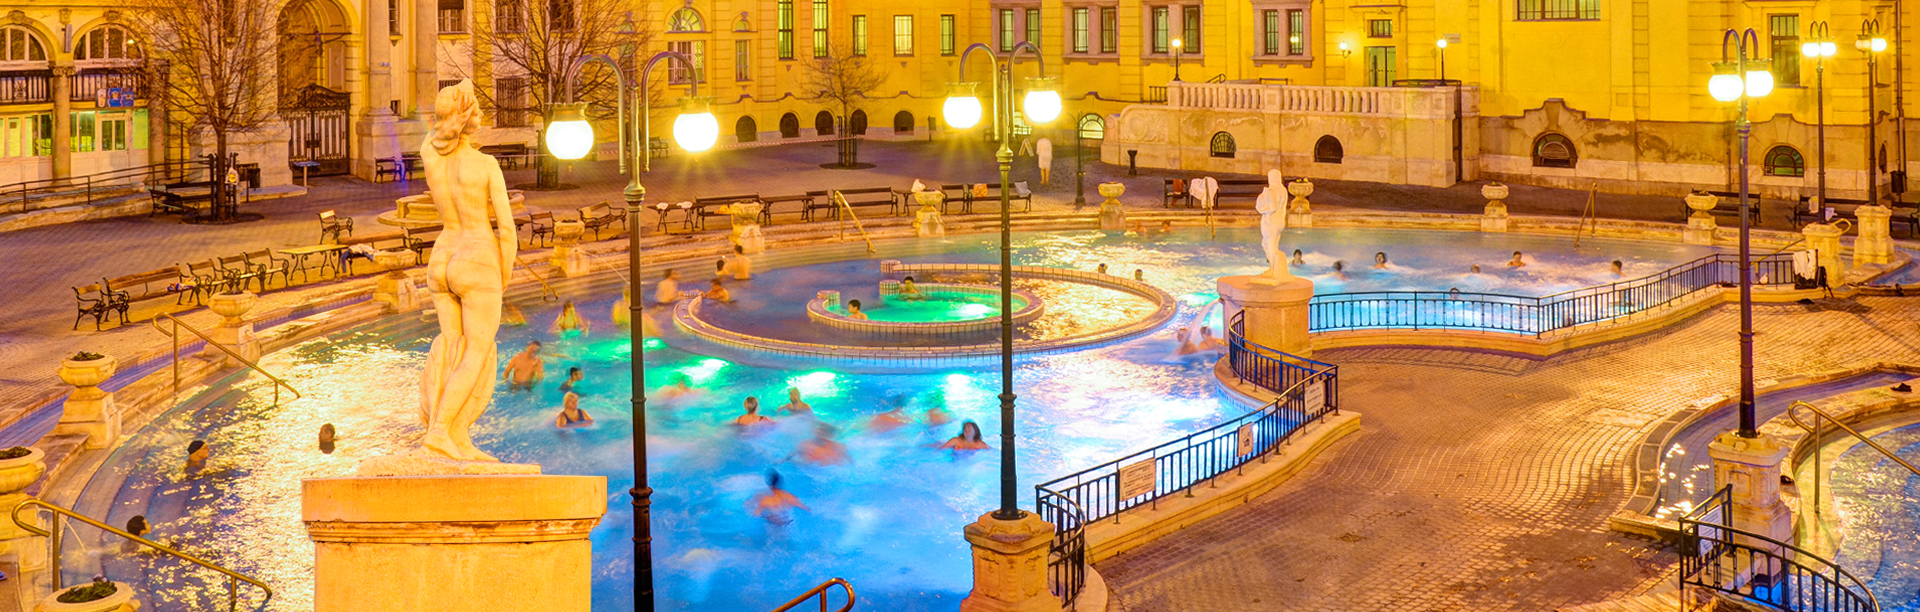 Winner of National Geographic Photo Contest taken at Széchenyi Thermal Baths Budapest